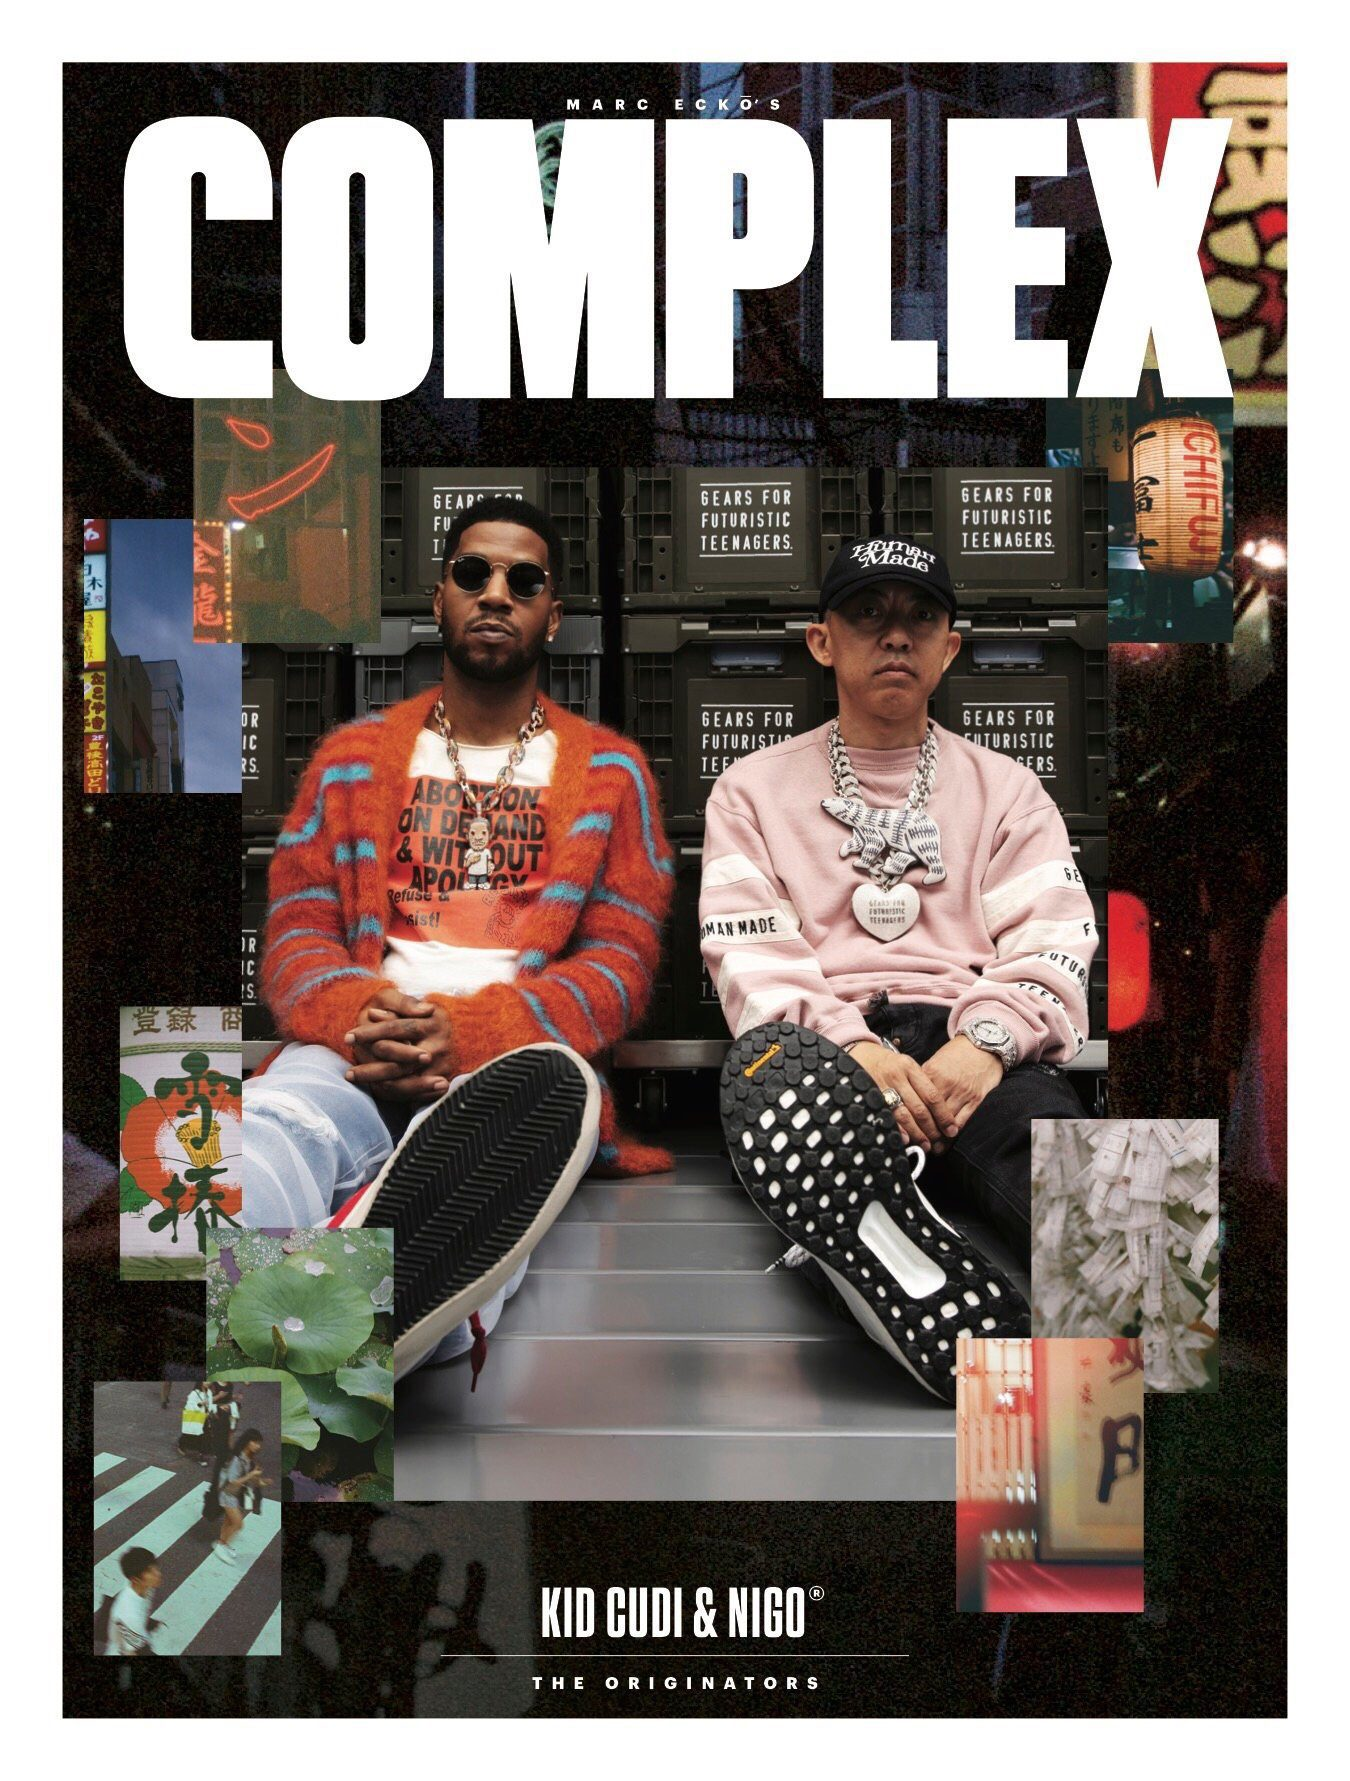 Kid Cudi has more Complex Magazine covers than any other artist